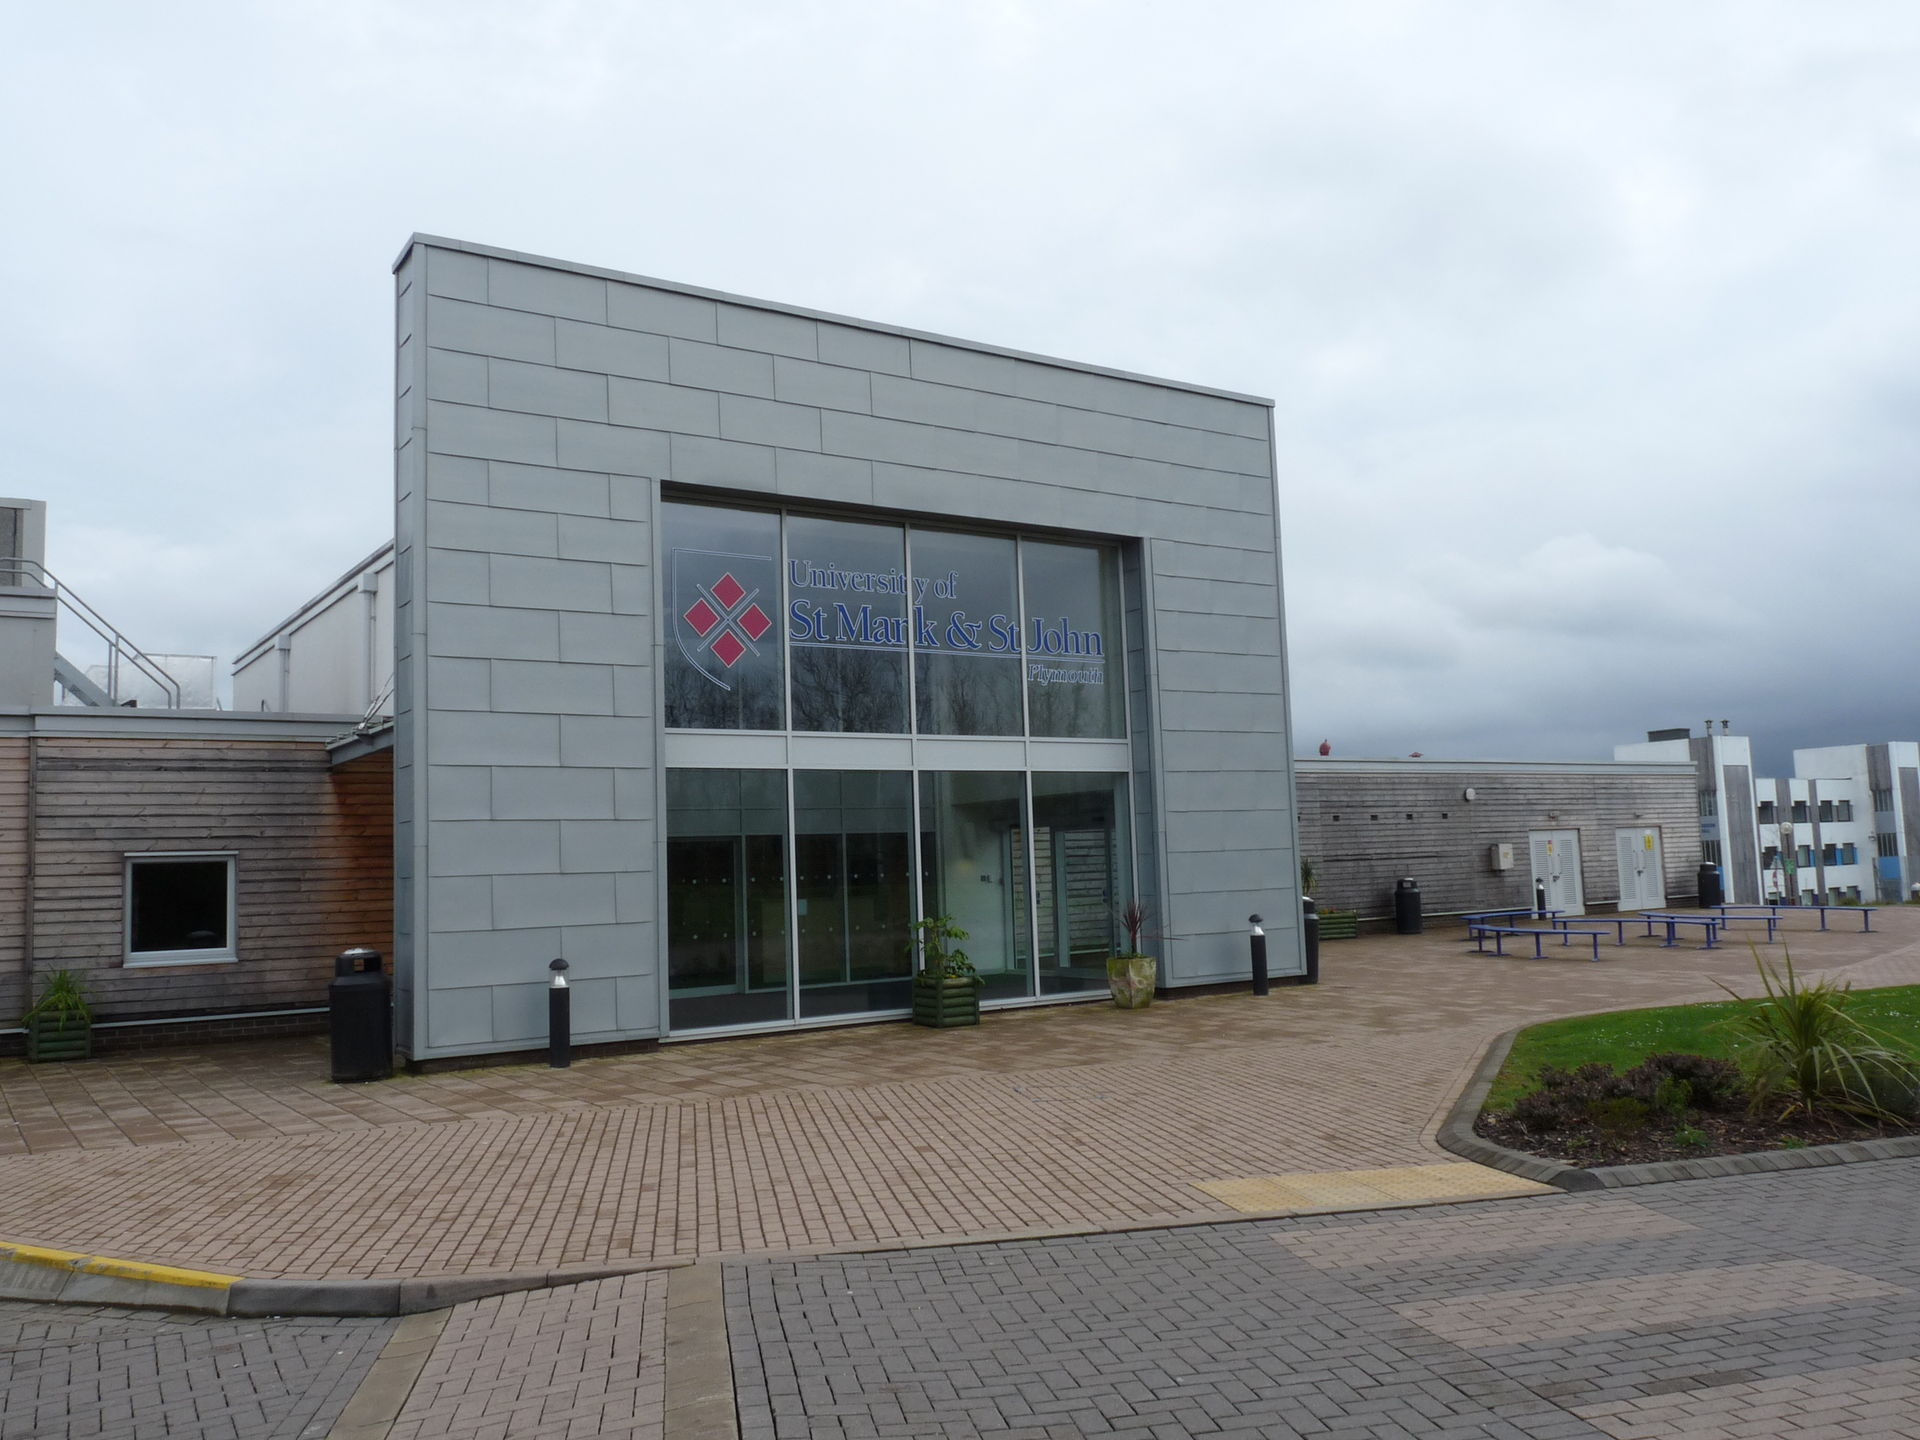 Plymouth University Campus Scb Building